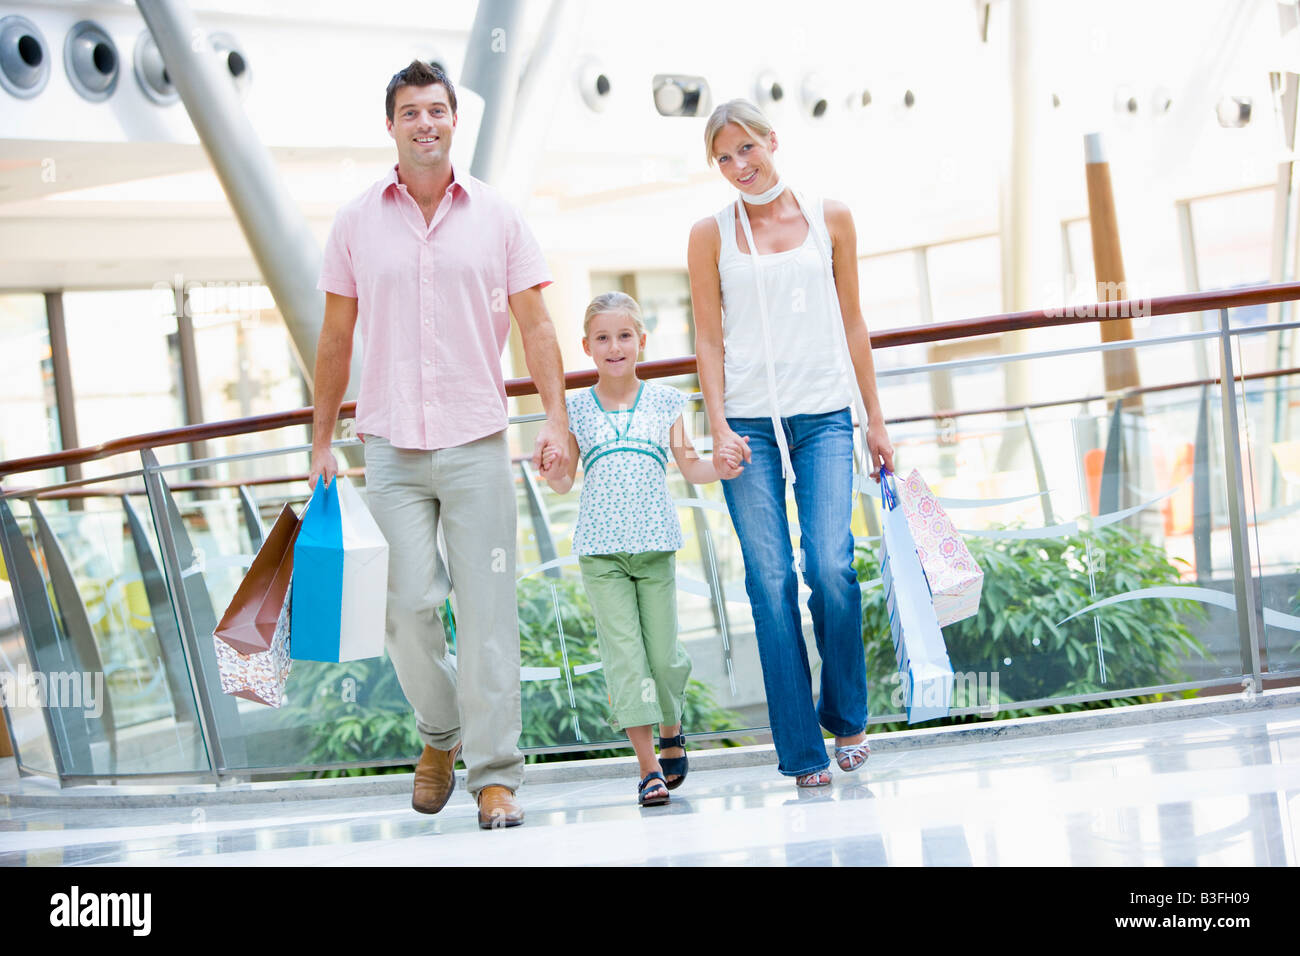 Mother and father with young daughter at a shopping mall - Stock Image